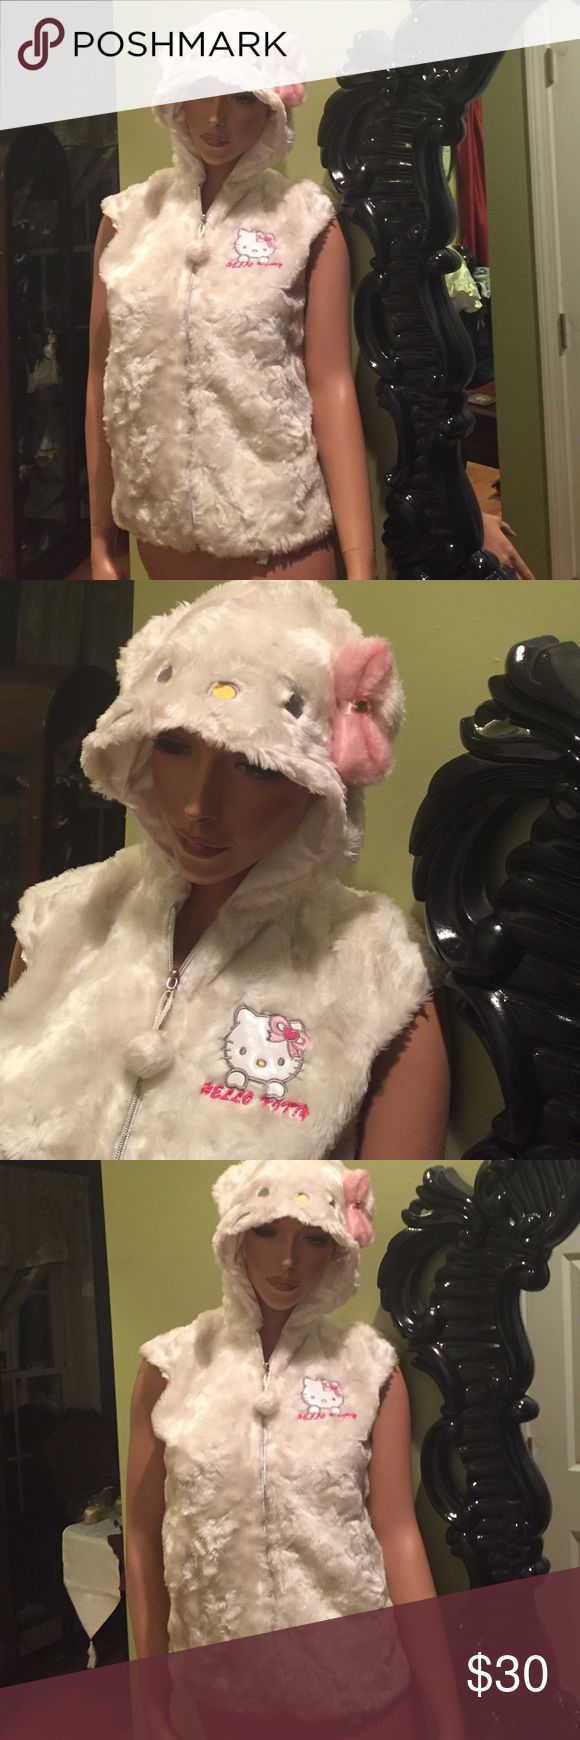 Hello kitty white faux fur vest jacket adult M Hello Kitty white faux fur jacket vest size junior woman M zips in the front- this is hard for me to part with - only worn a few times but rare and super cute. I am just trying to get rid of things I don't wear. Hello Kitty Tops Sweatshirts & Hoodies